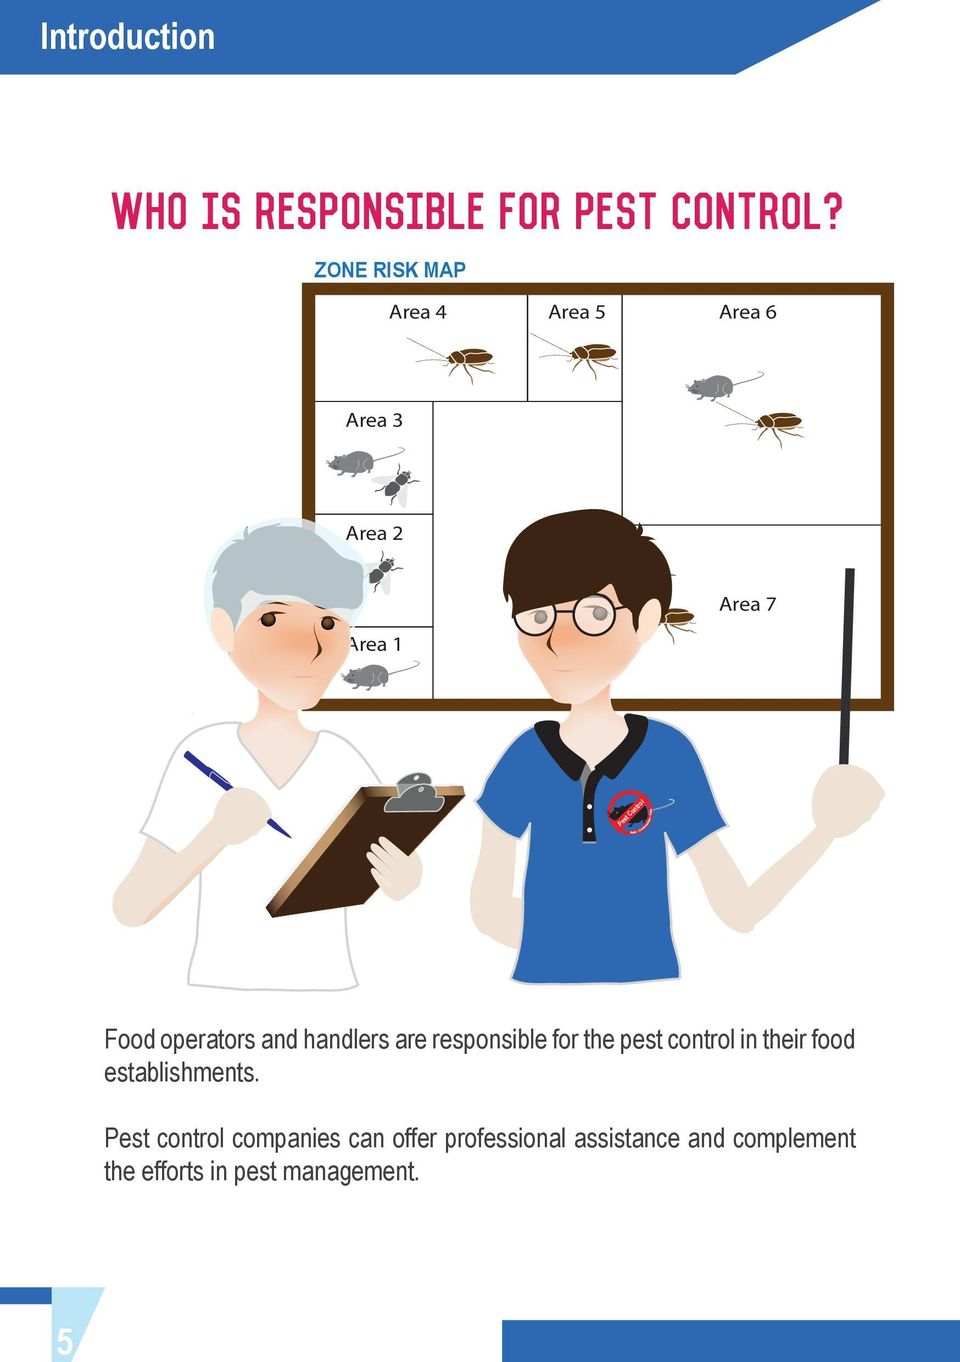 operators and handlers are responsible for the pest control in their food